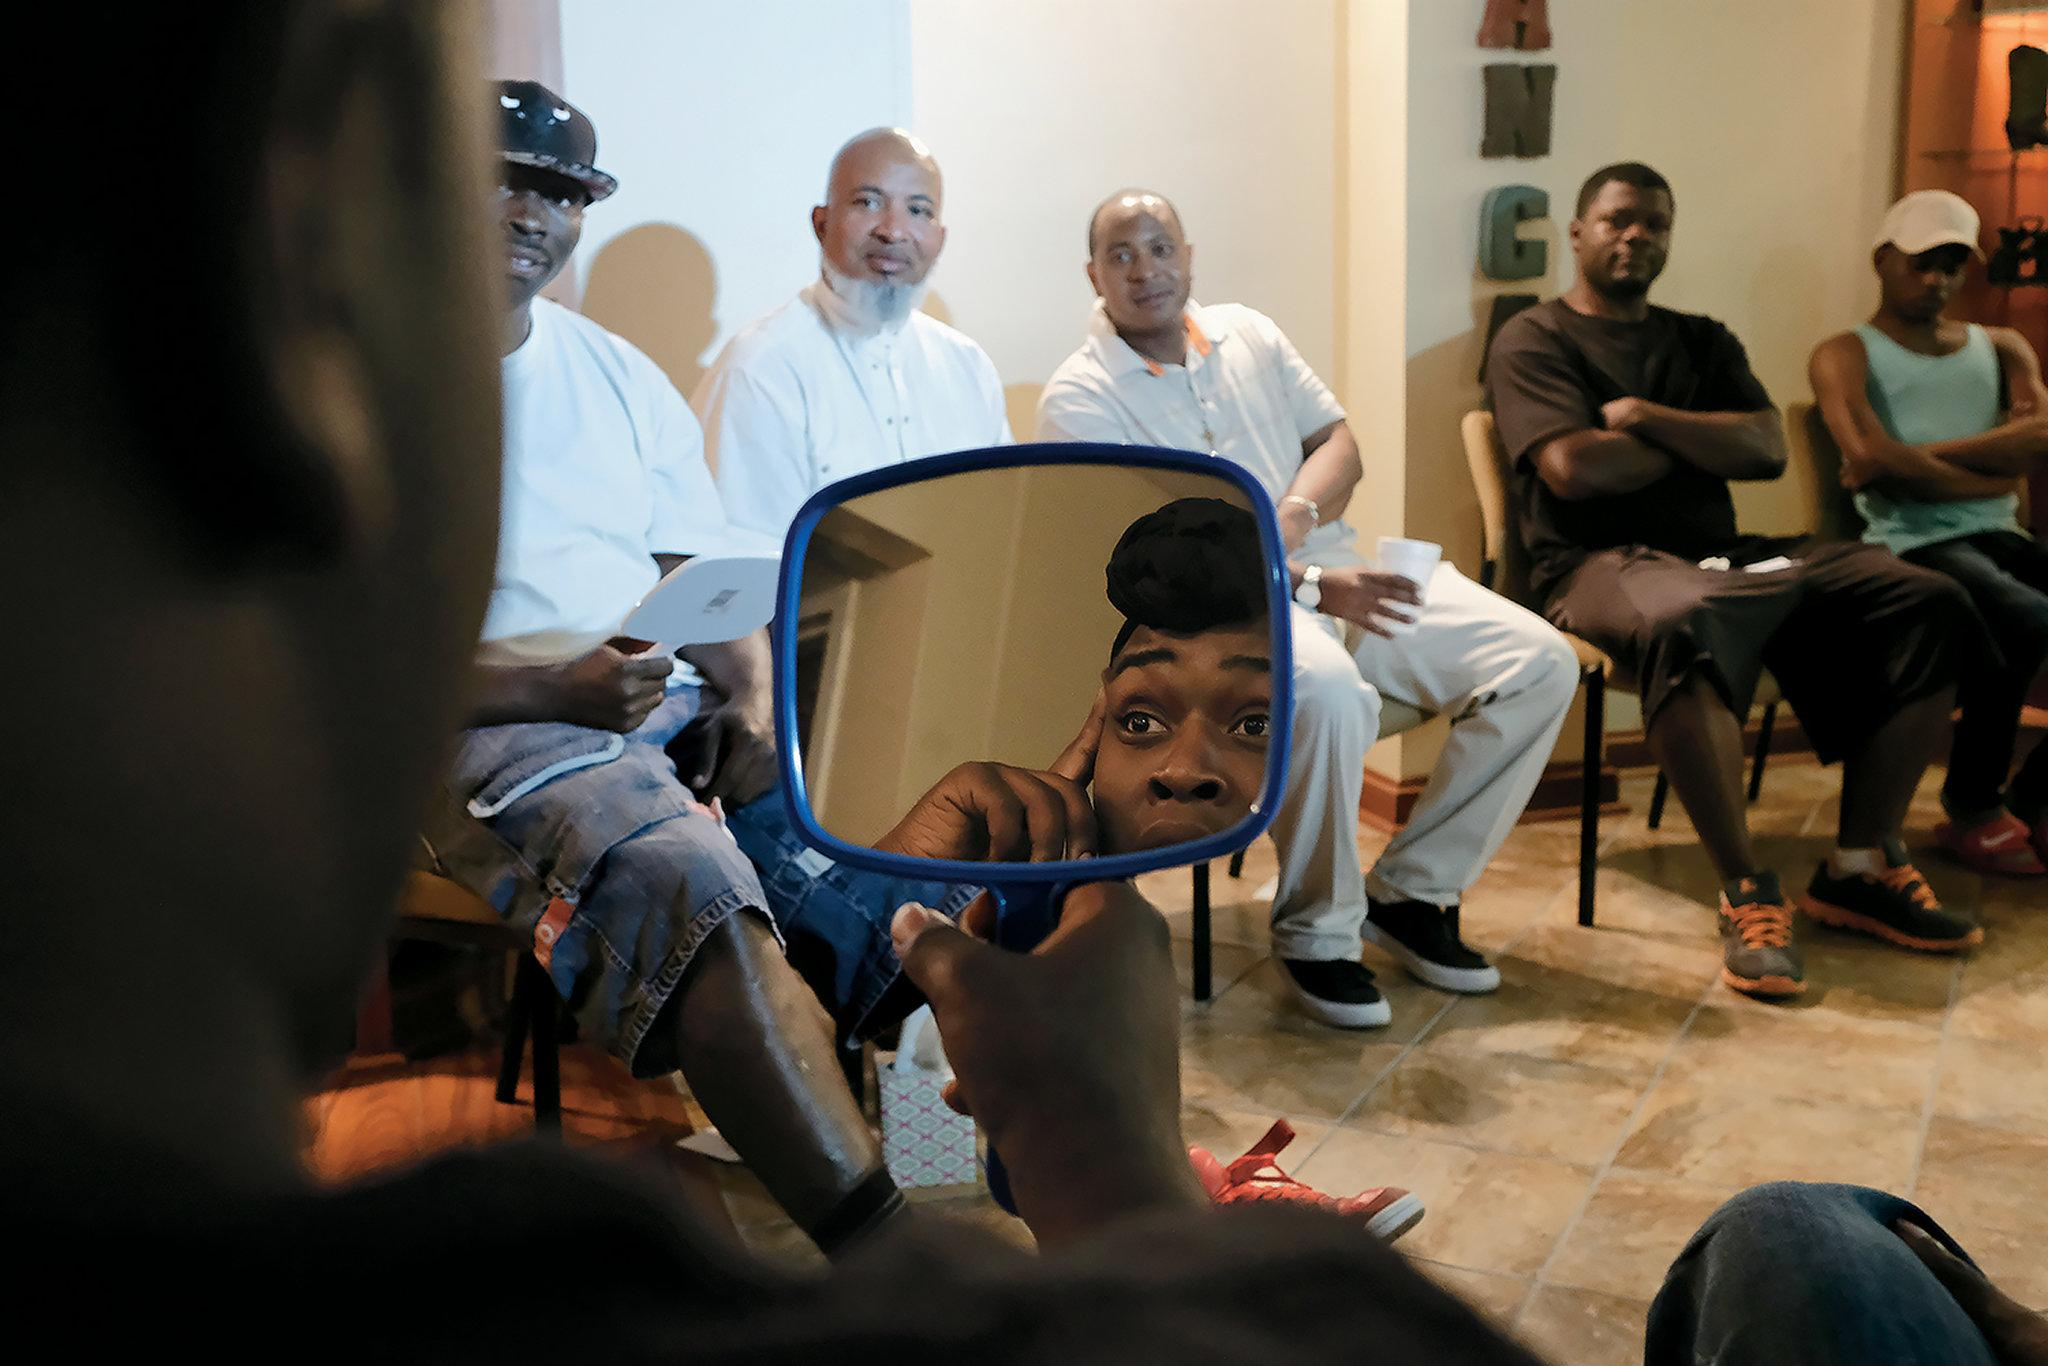 Jennings taking part in Sturdevant's support group in May. Participants were asked to look in the mirror and say something positive about themselves.